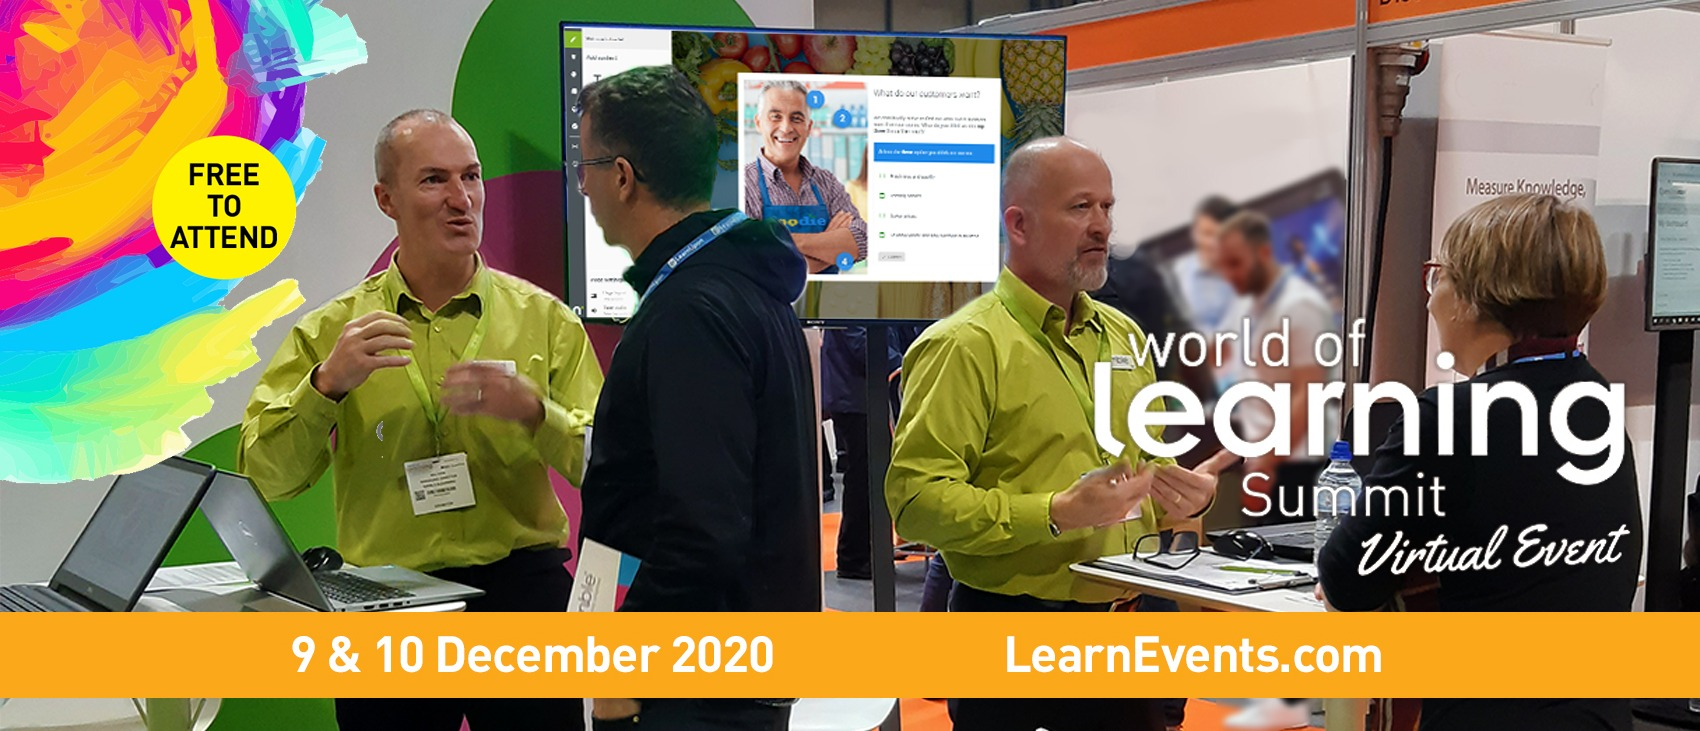 Nimble Author 2 makes its debut at World of Learning Virtual Summit 2020